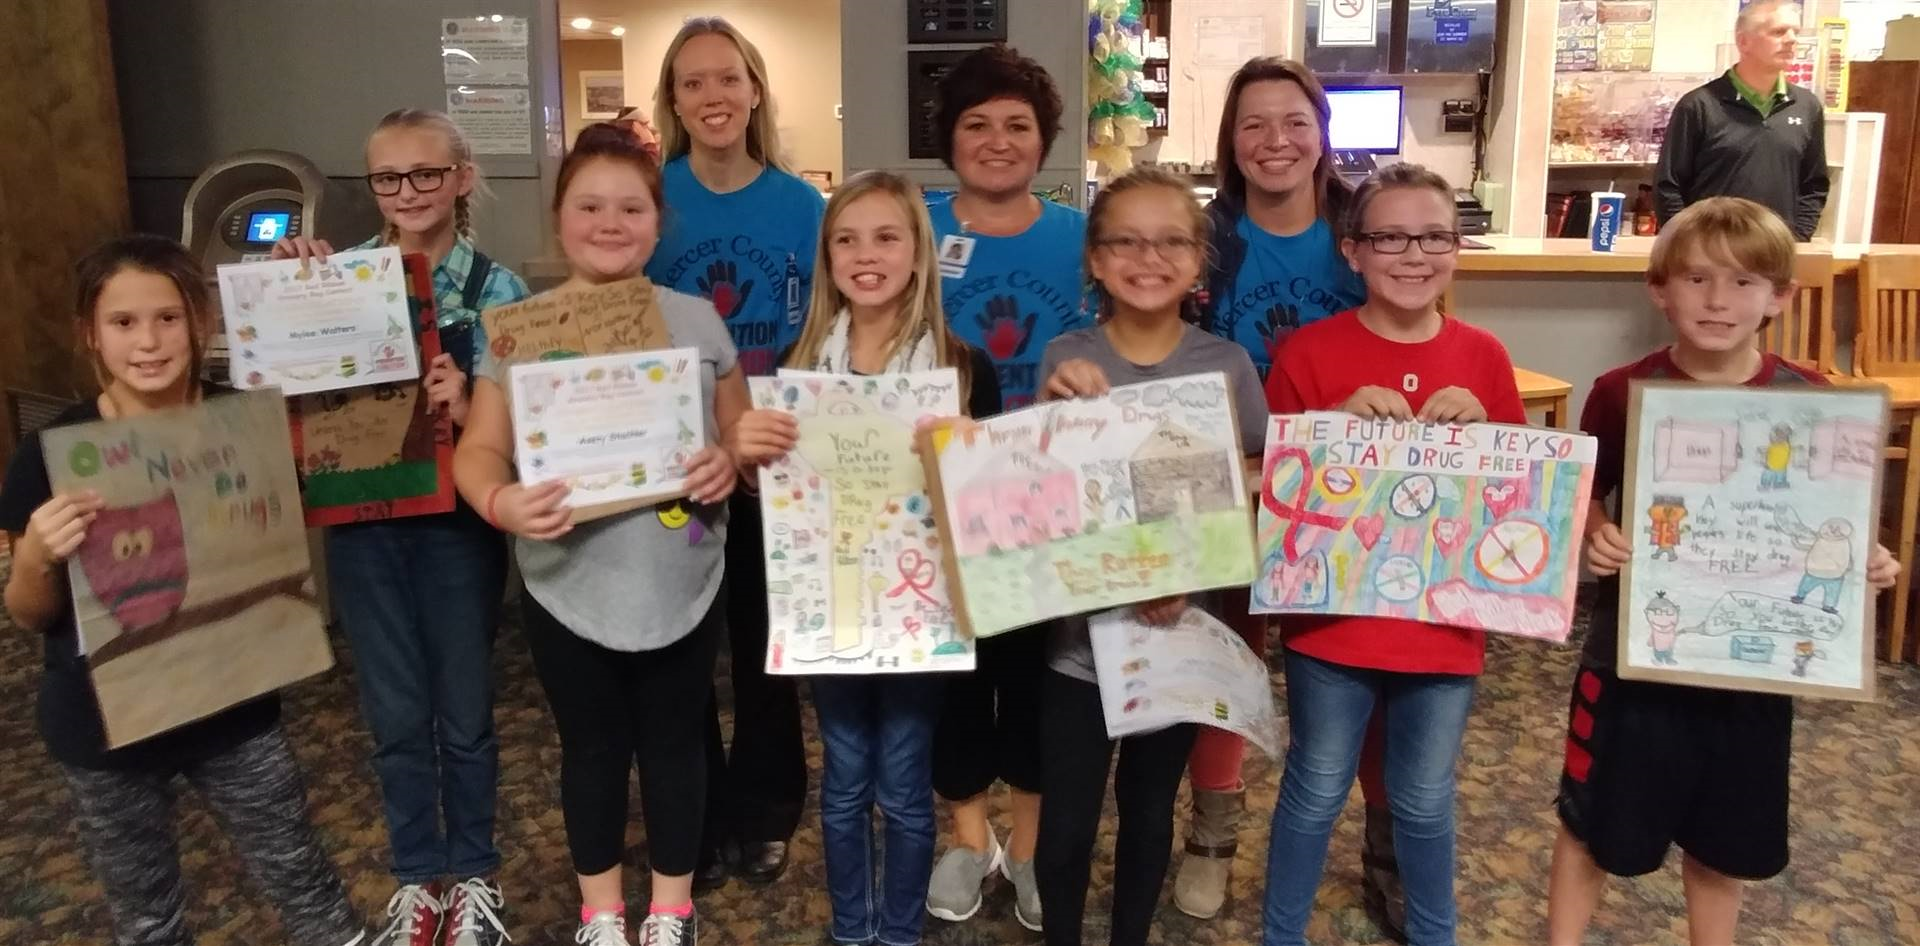 Mercer County Grocery Bag Winners with Mercer County Prevention Coalition Members